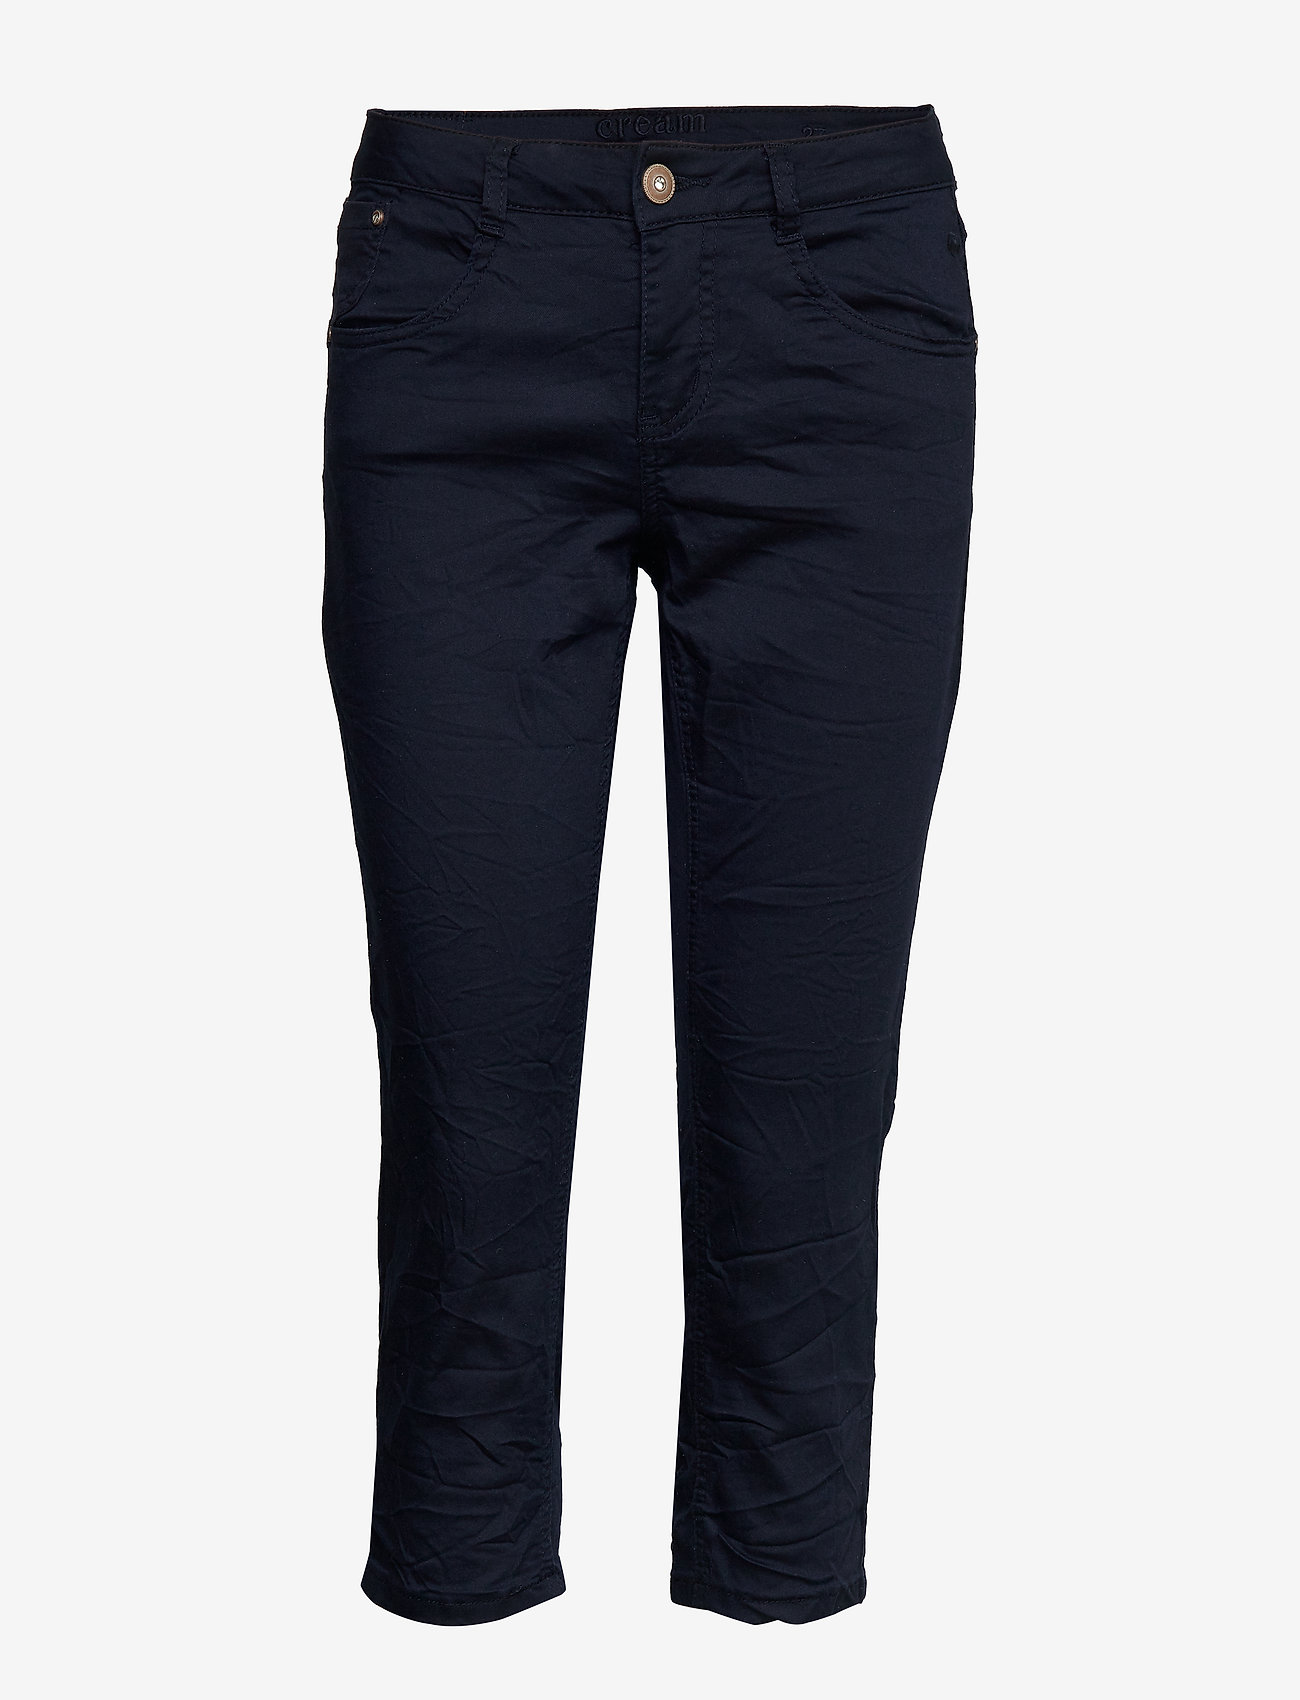 Cream - VavaCR 3/4 Pant coco fit - straight jeans - royal navy blue